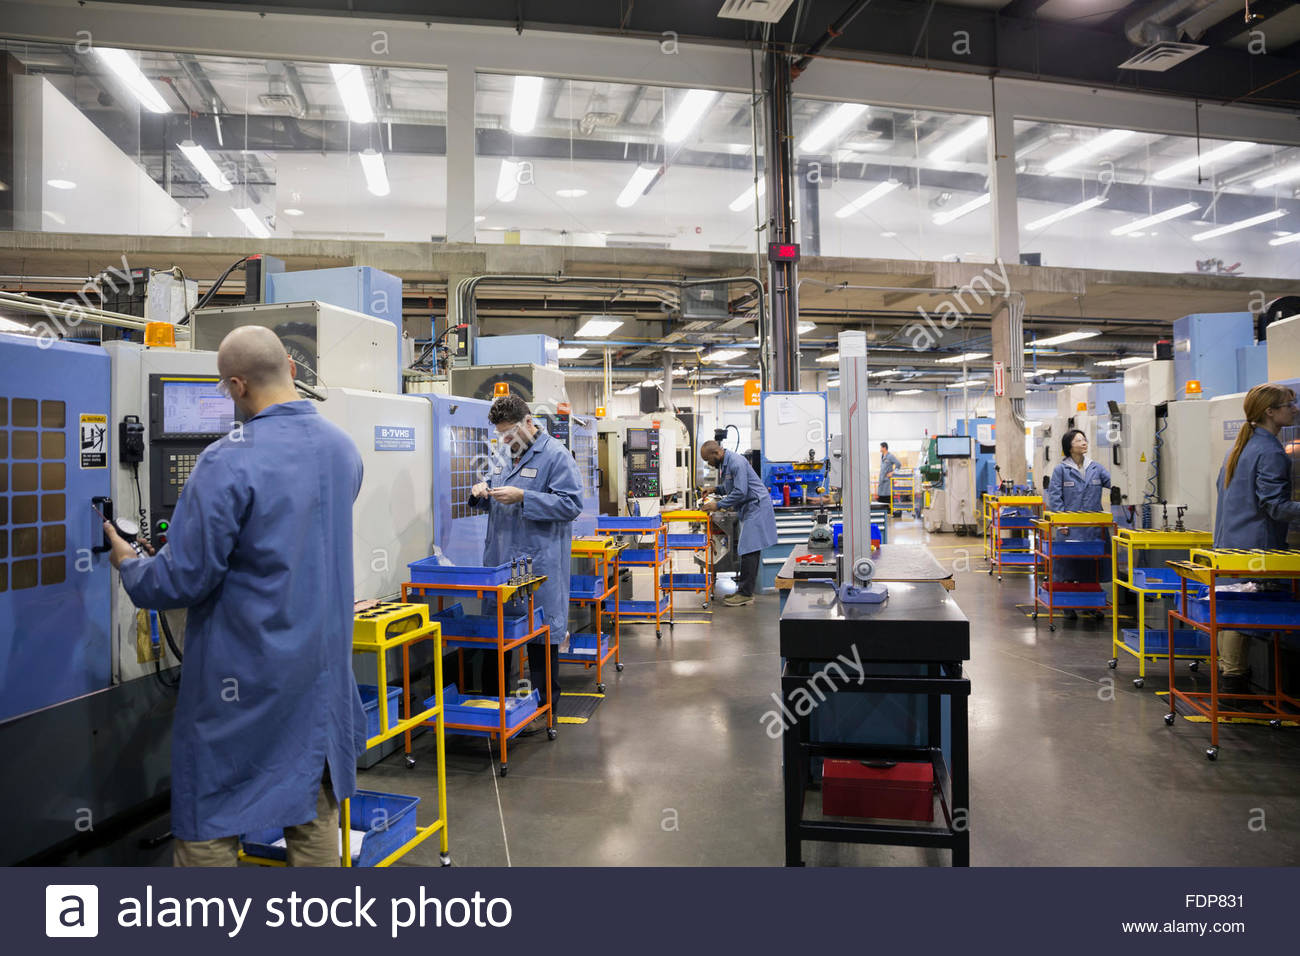 Workers at machinery in textile factory - Stock Image